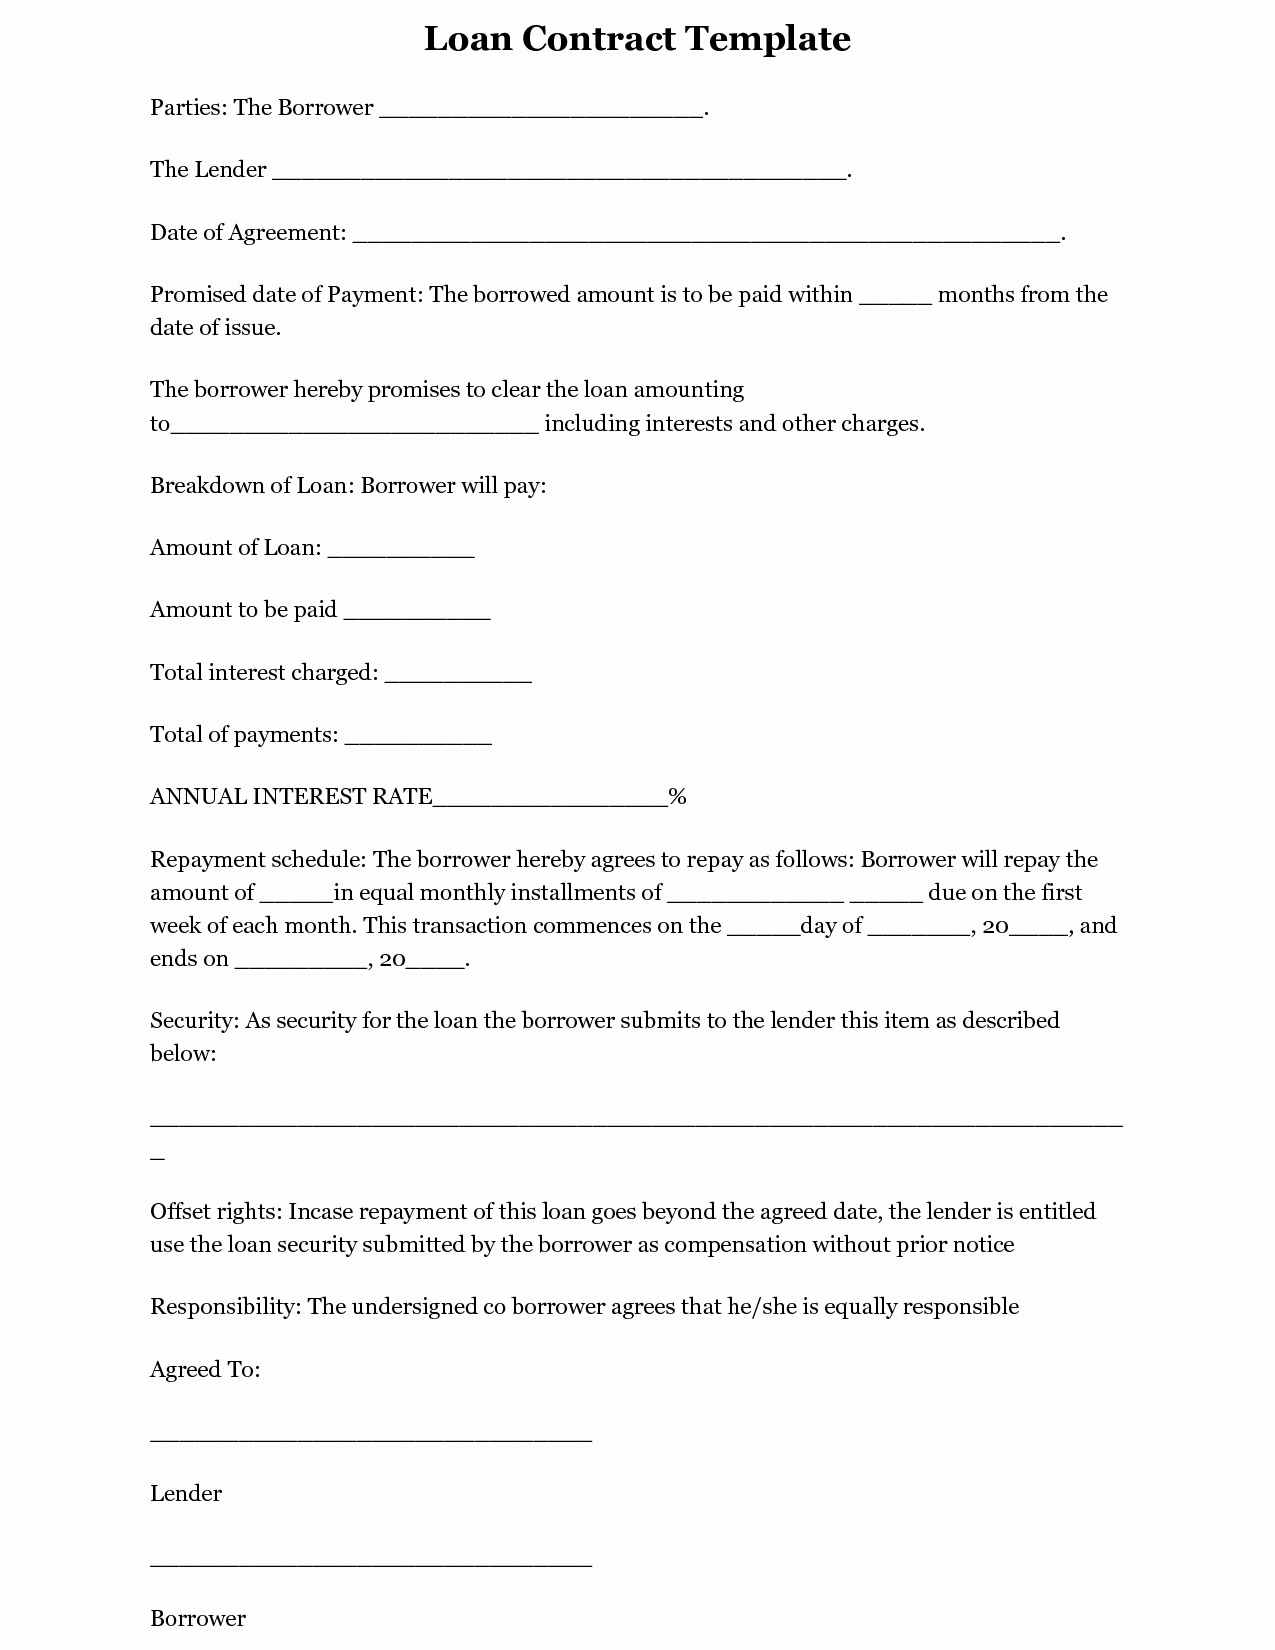 Free Loan Agreement Template Word Awesome Simple Loan Agreement